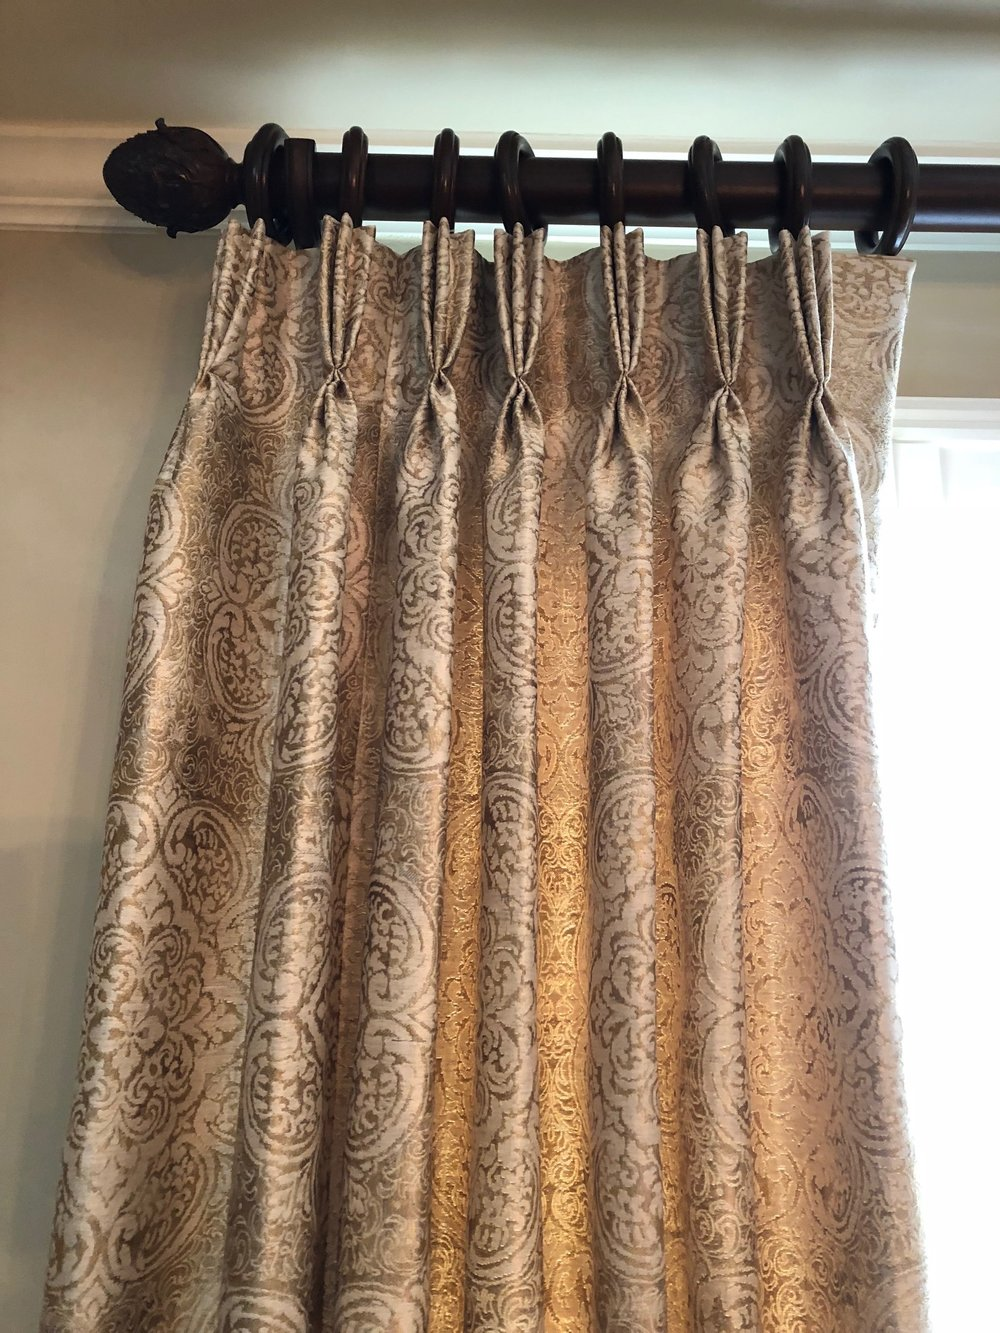 Custom draperies with reach gold and black fabric.